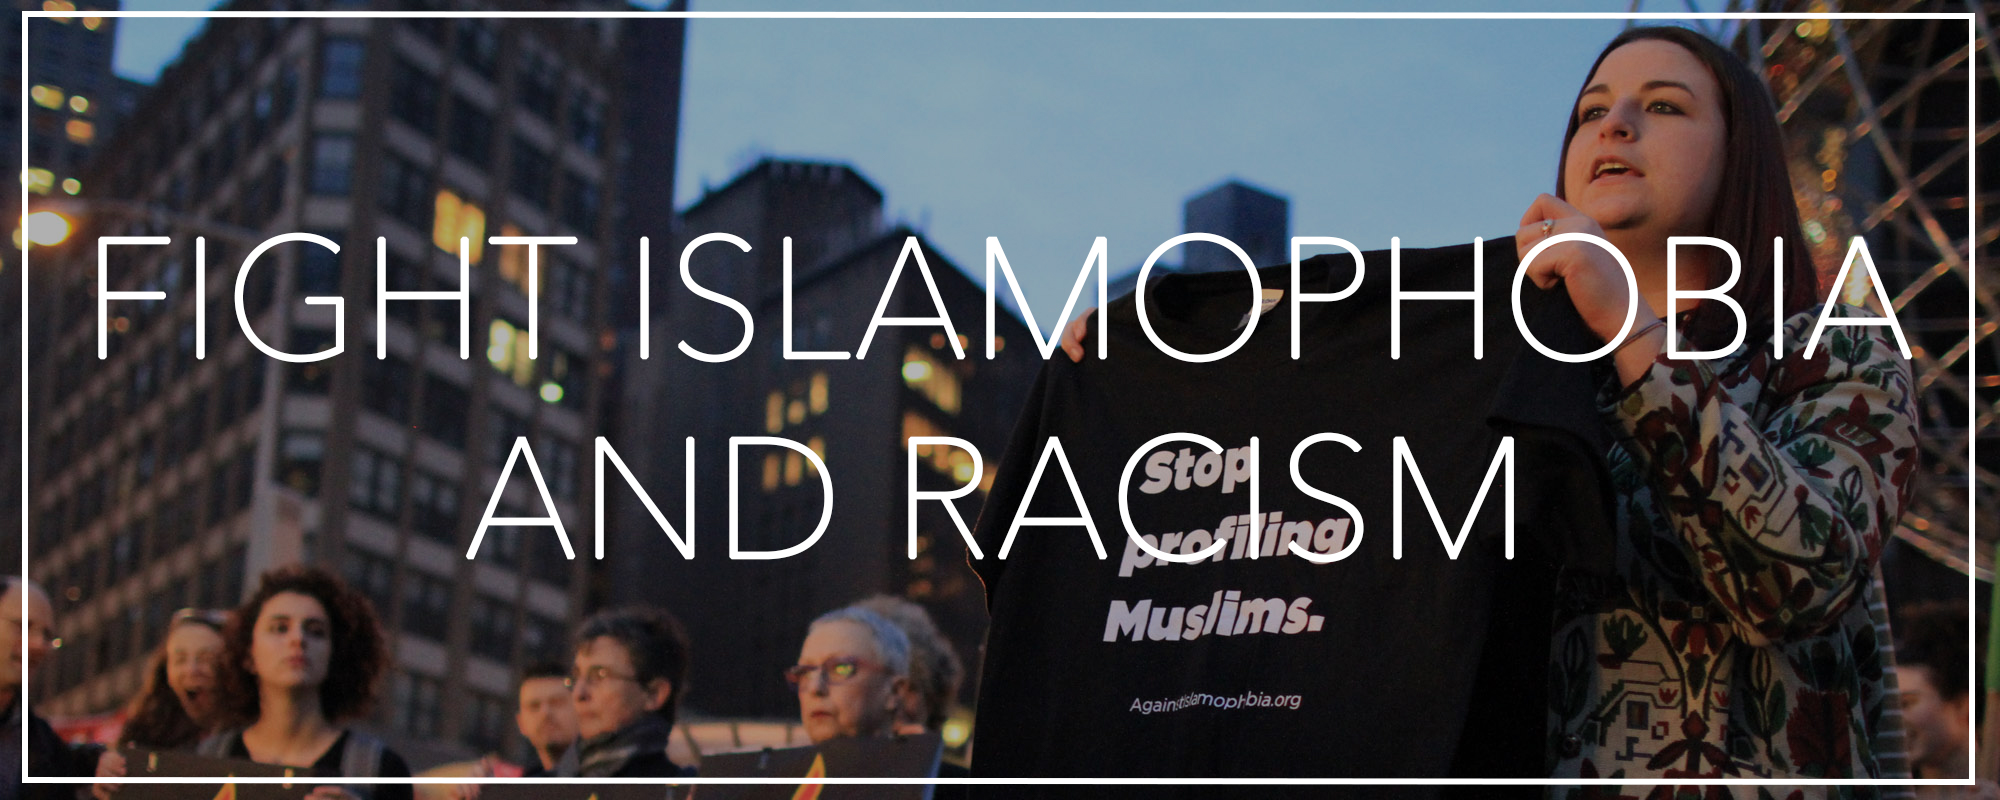 FIGHT ISLAMOPHOBIA AND RACISM